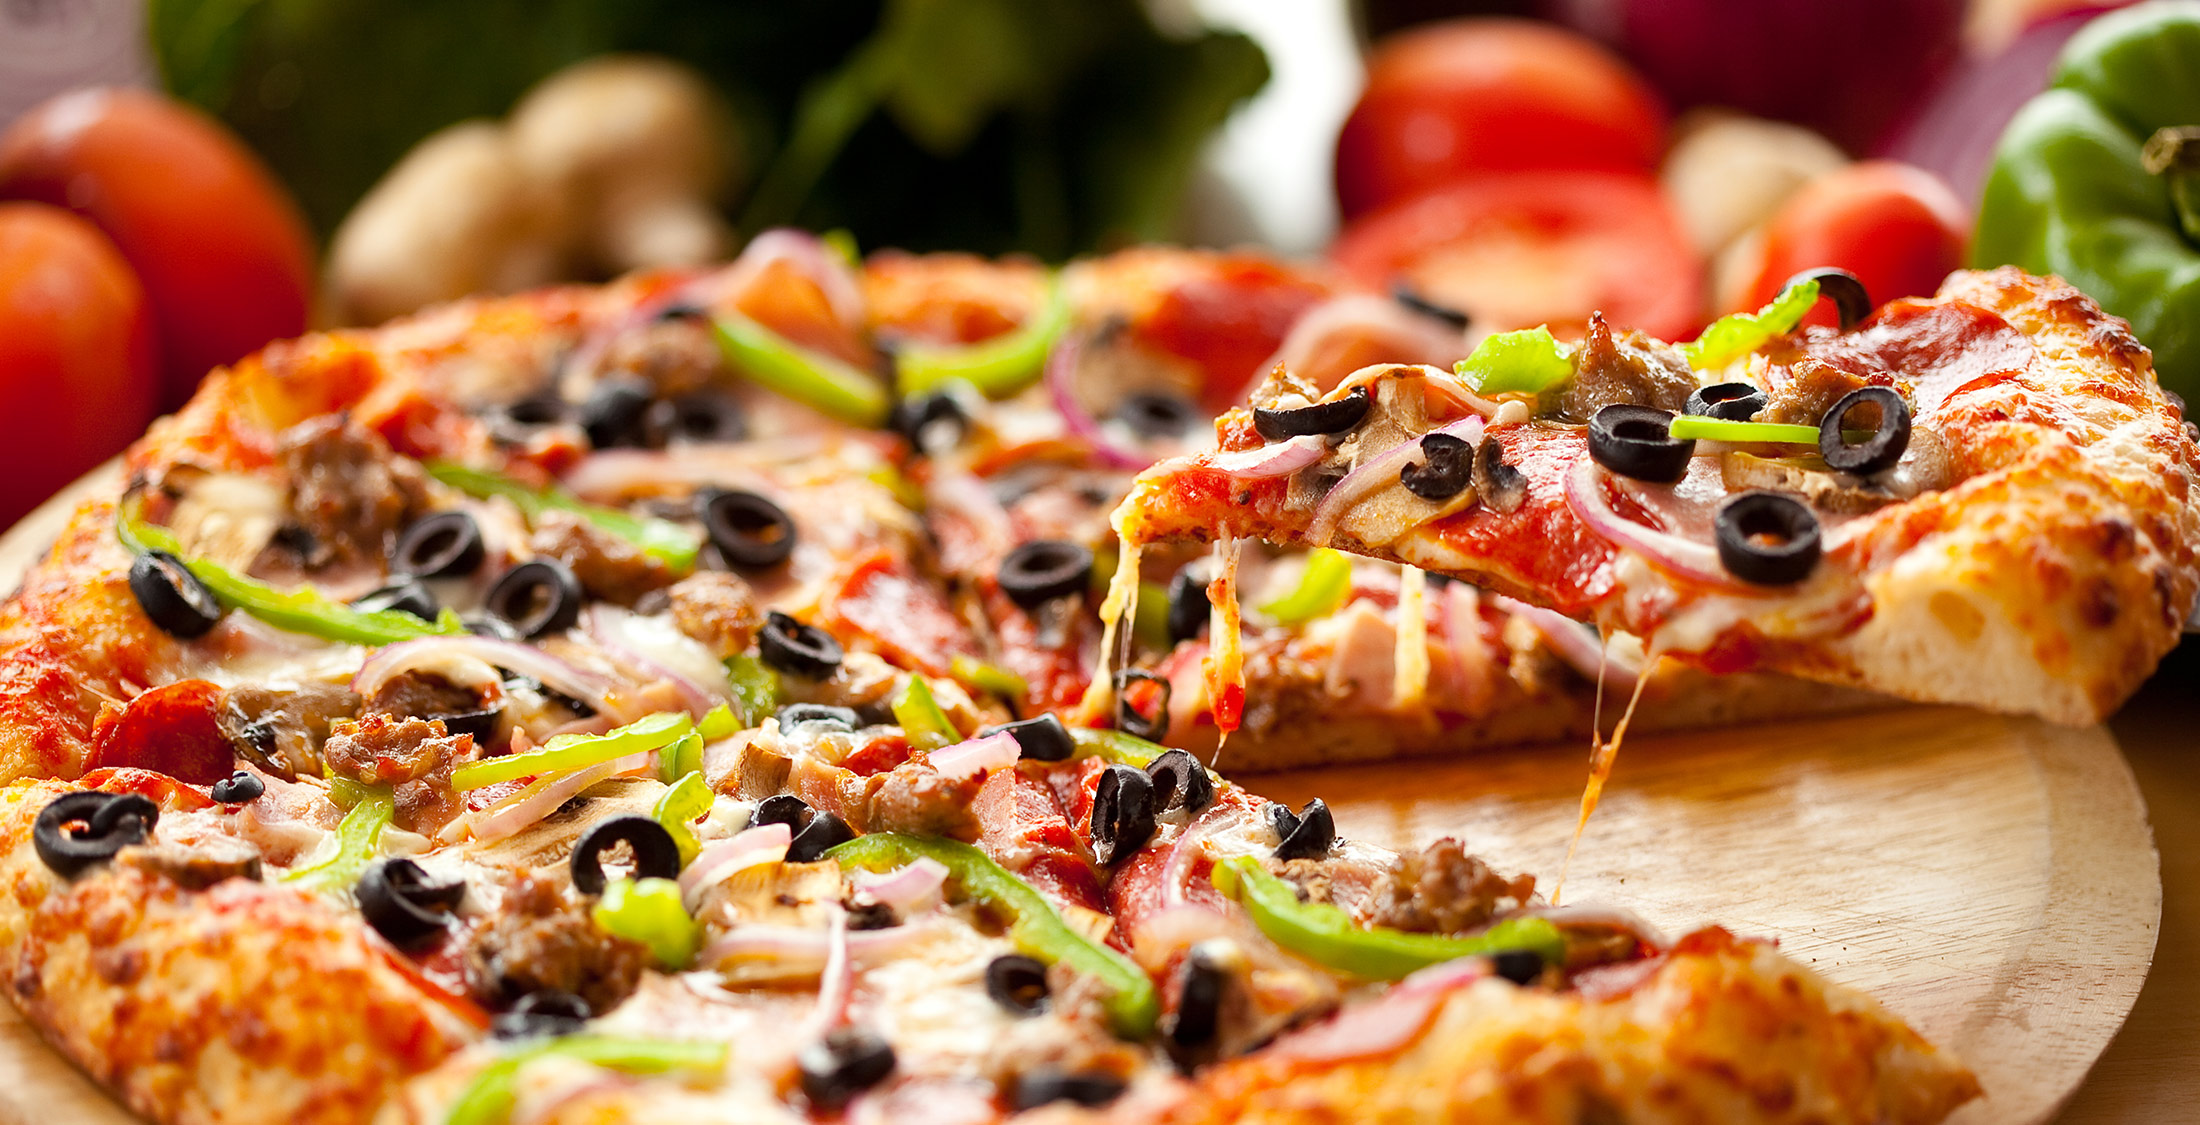 Dominos pizza coupons retailmenot - 15 Best Pizza Deals For National Pizza Month